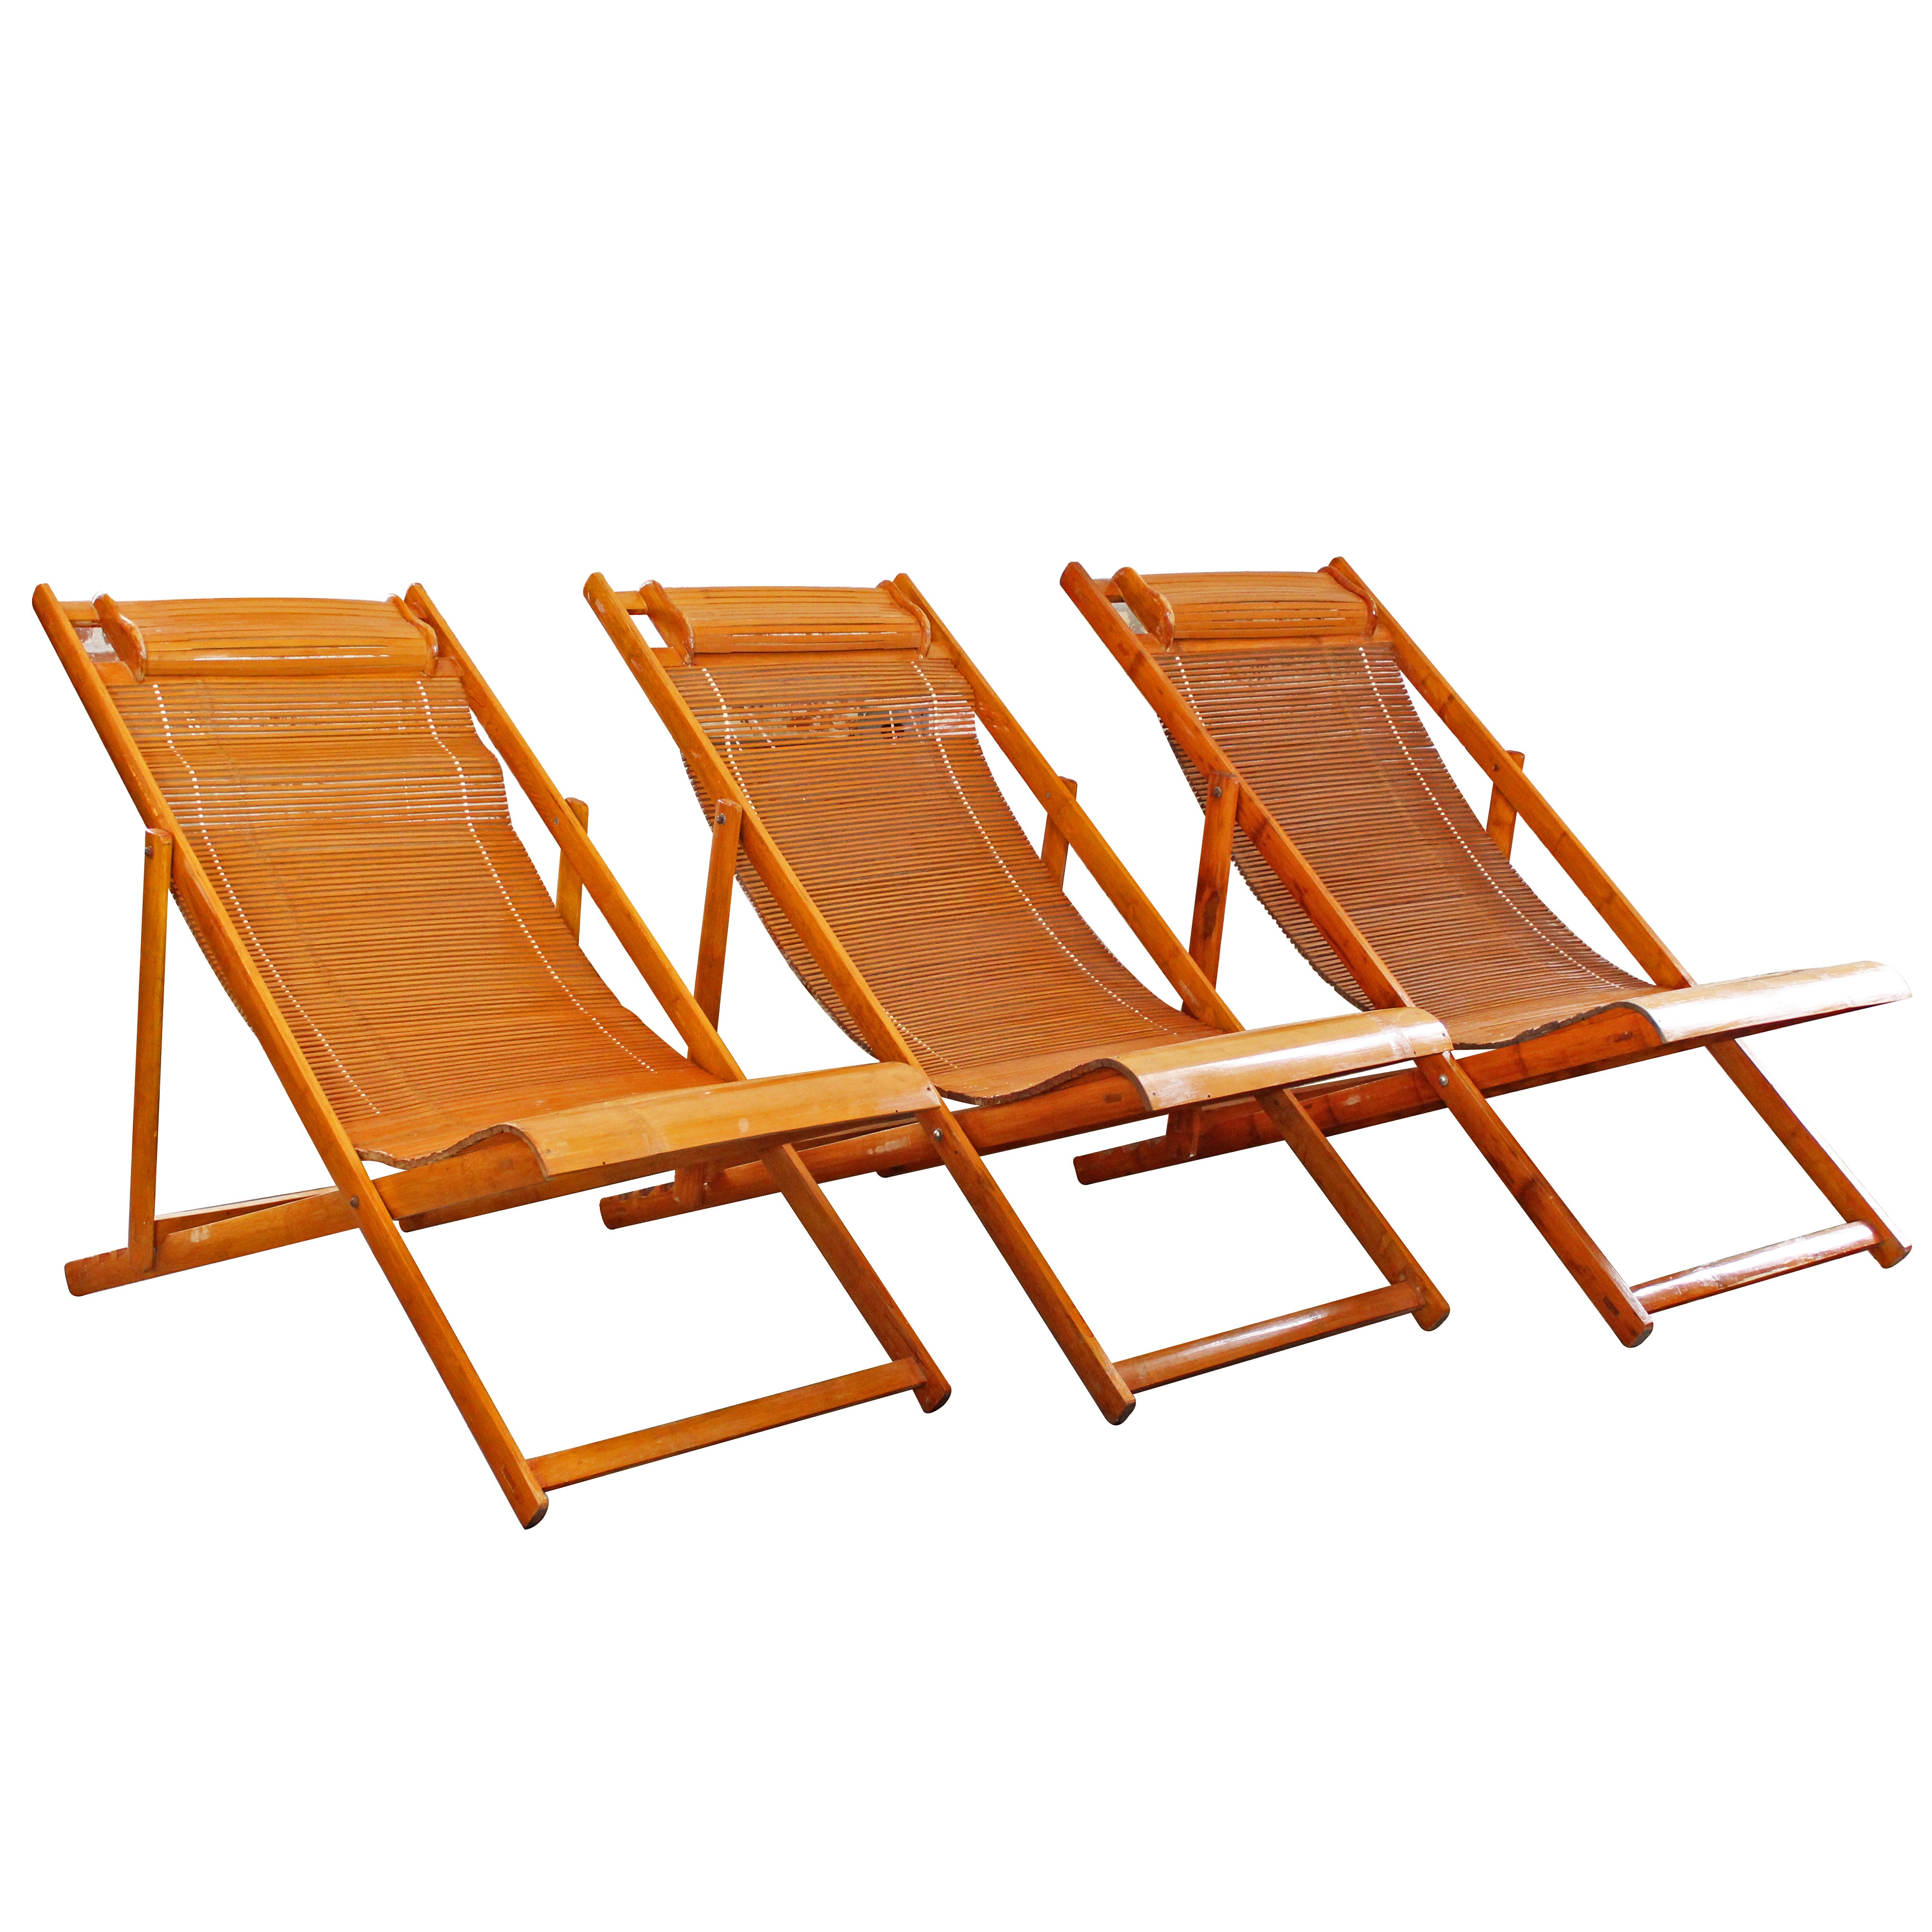 oriental outdoor furniture. Vintage Bamboo Loungers Wood Japanese Deck Chairs, Outdoor Fold Up Lounge Chairs For Sale At 1stdibs Oriental Furniture